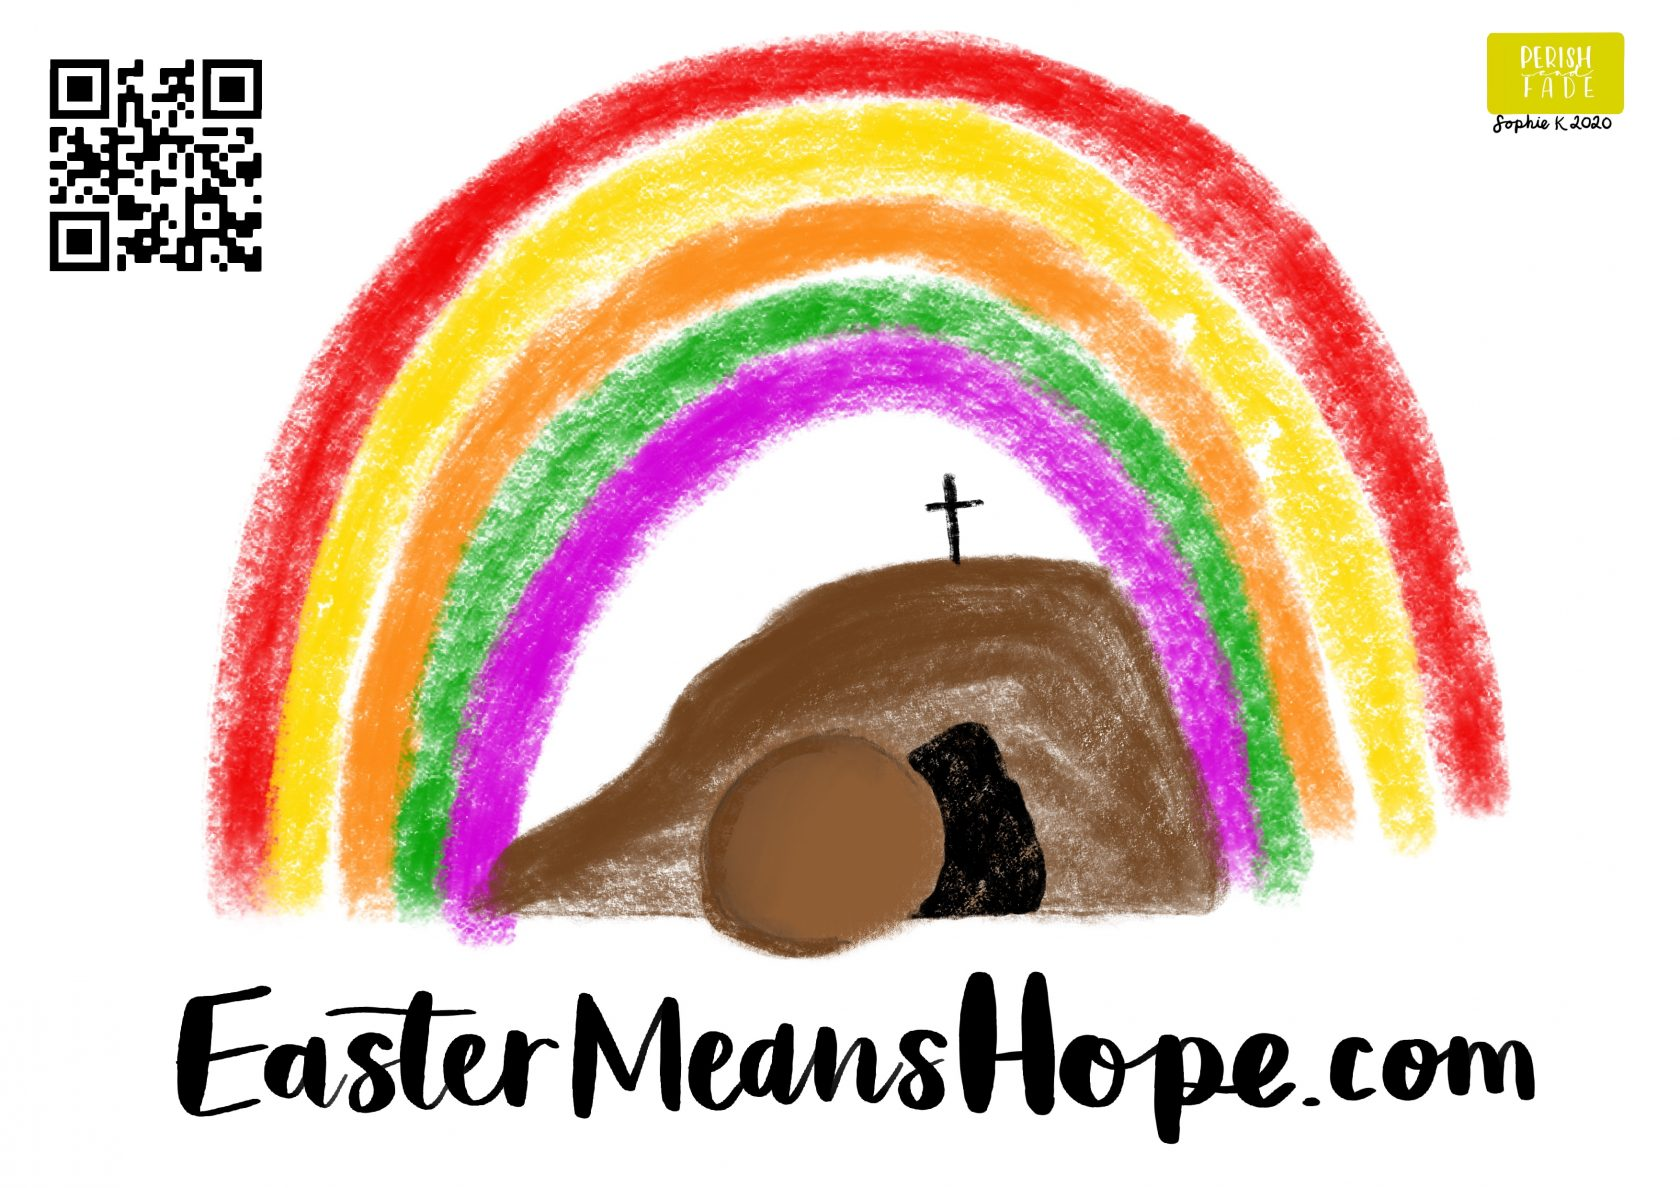 Easter_Means_Hope._Colour_Logo